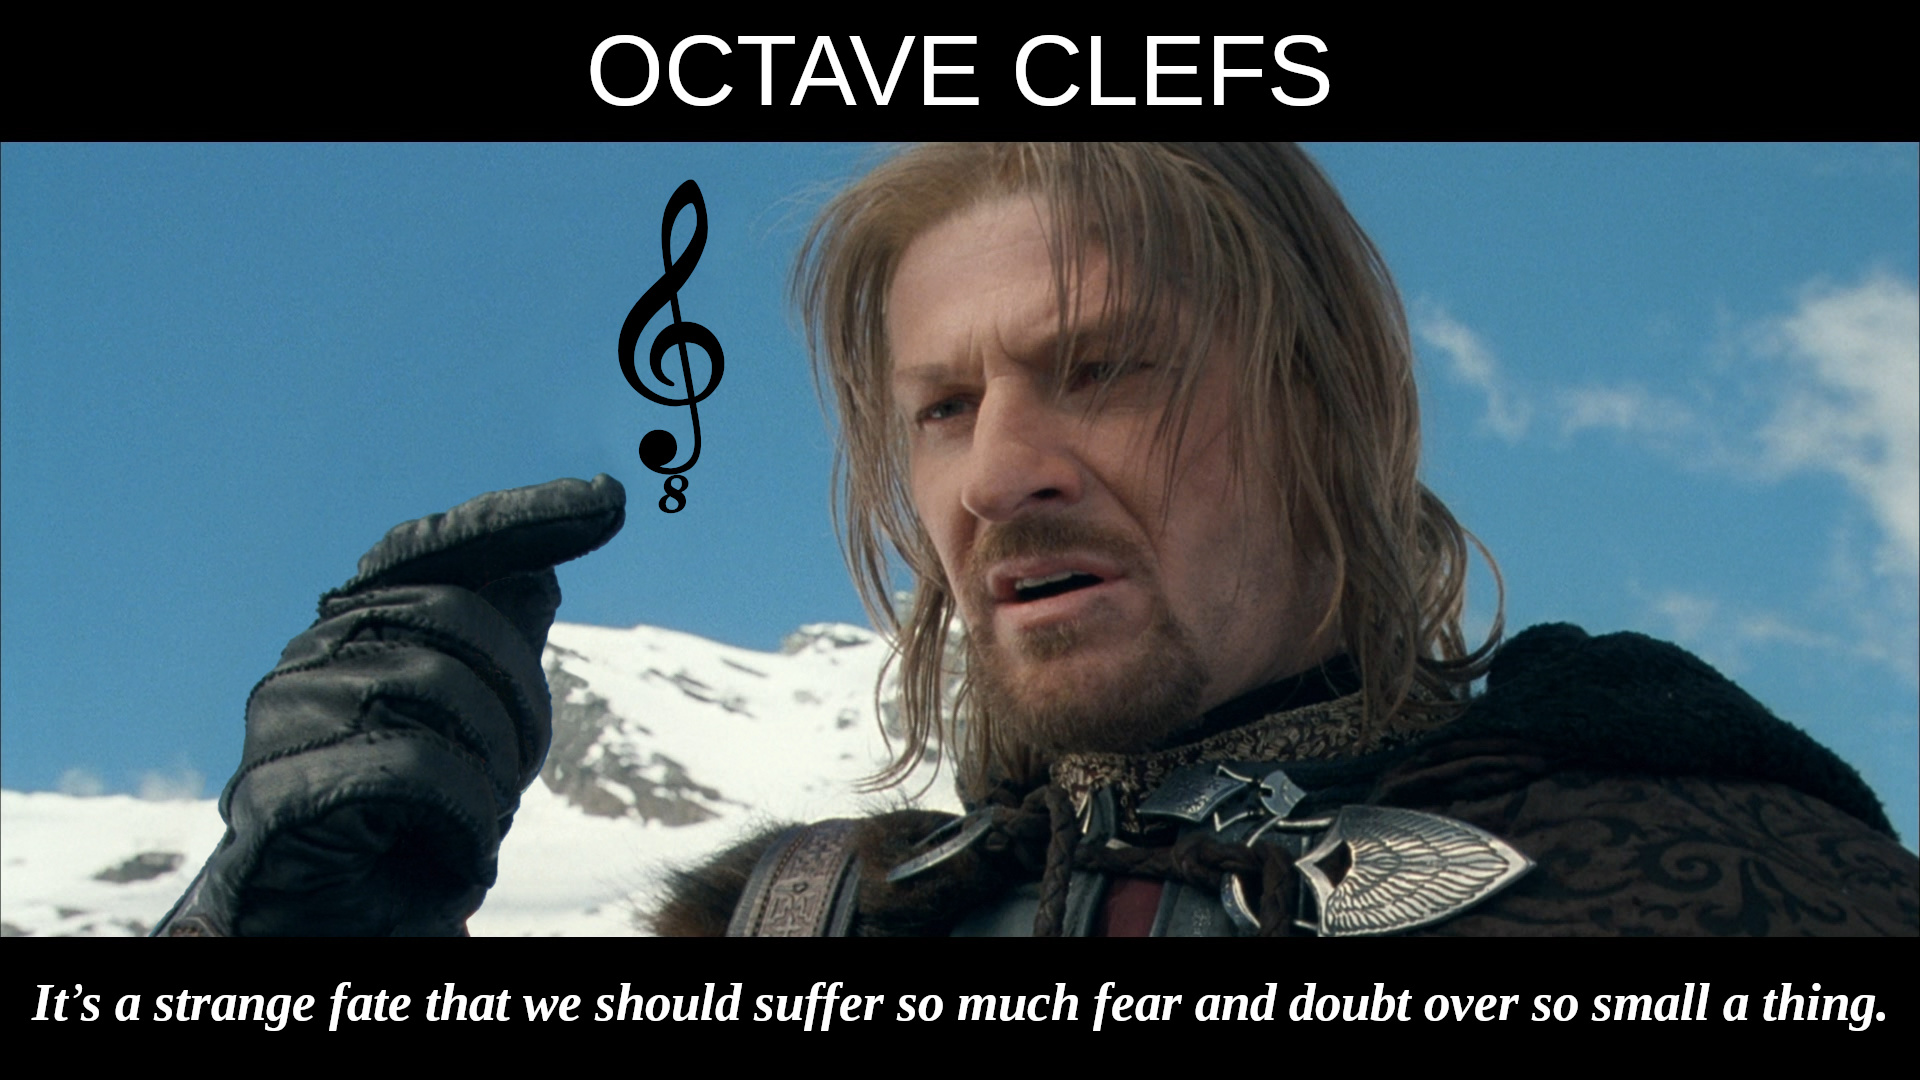 OCTAVE CLEFS: It's a strange fate that we should suffer so much fear and doubt over so small a thing. – Boromir